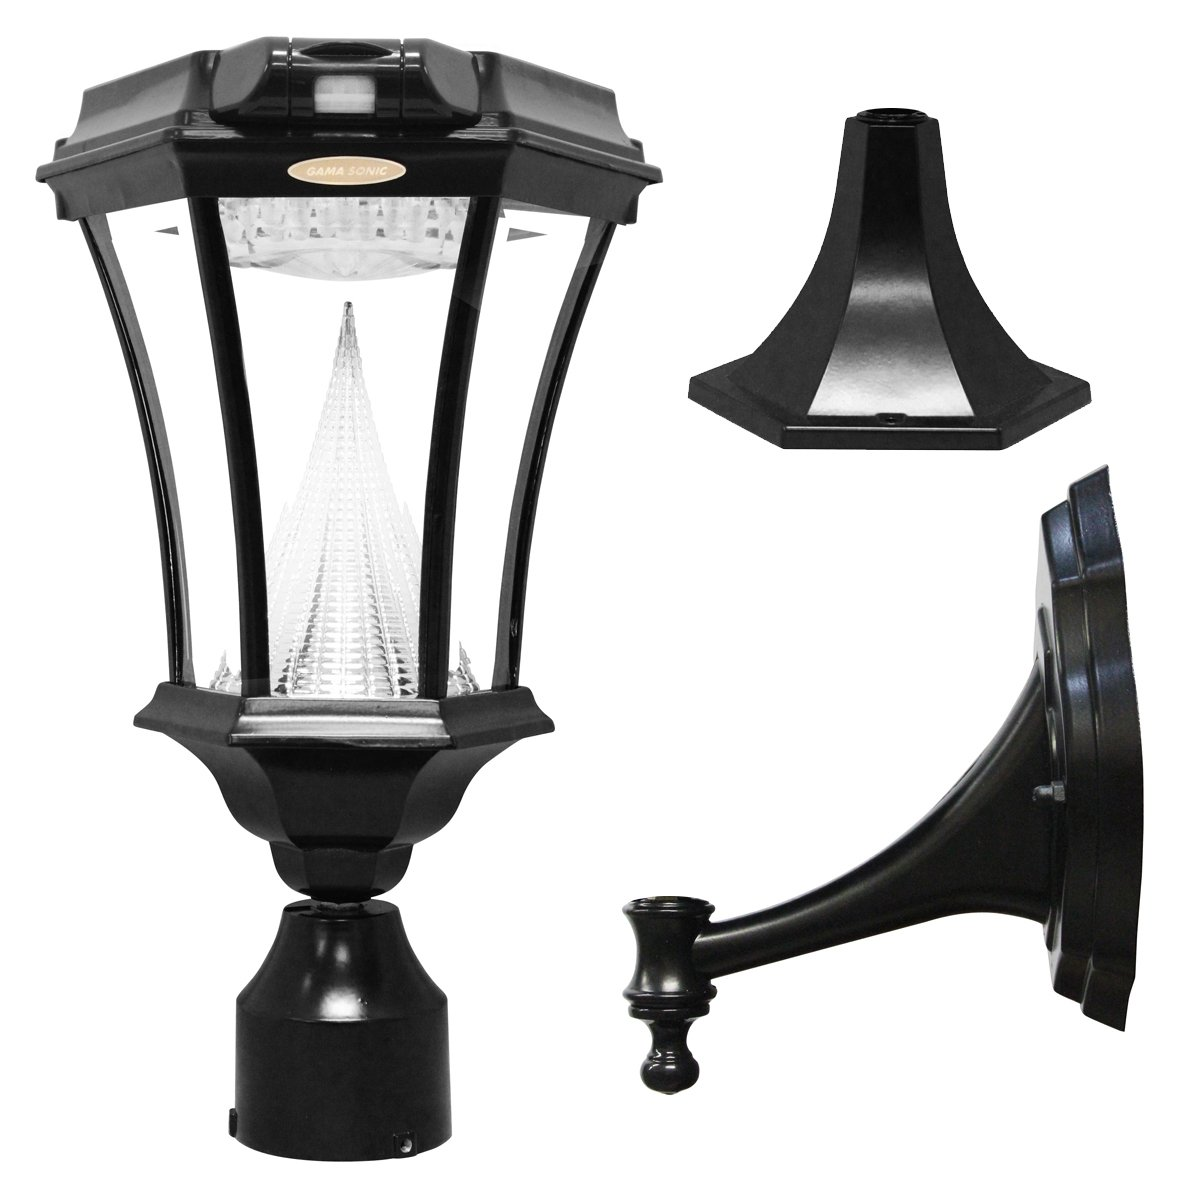 Gama Sonic Victorian Solar Outdoor LED Light Fixture with Motion Sensor, Bright-White LEDs, Pole/Post/Wall Mount Kit, Black Finish #GS-94FPW-PIR